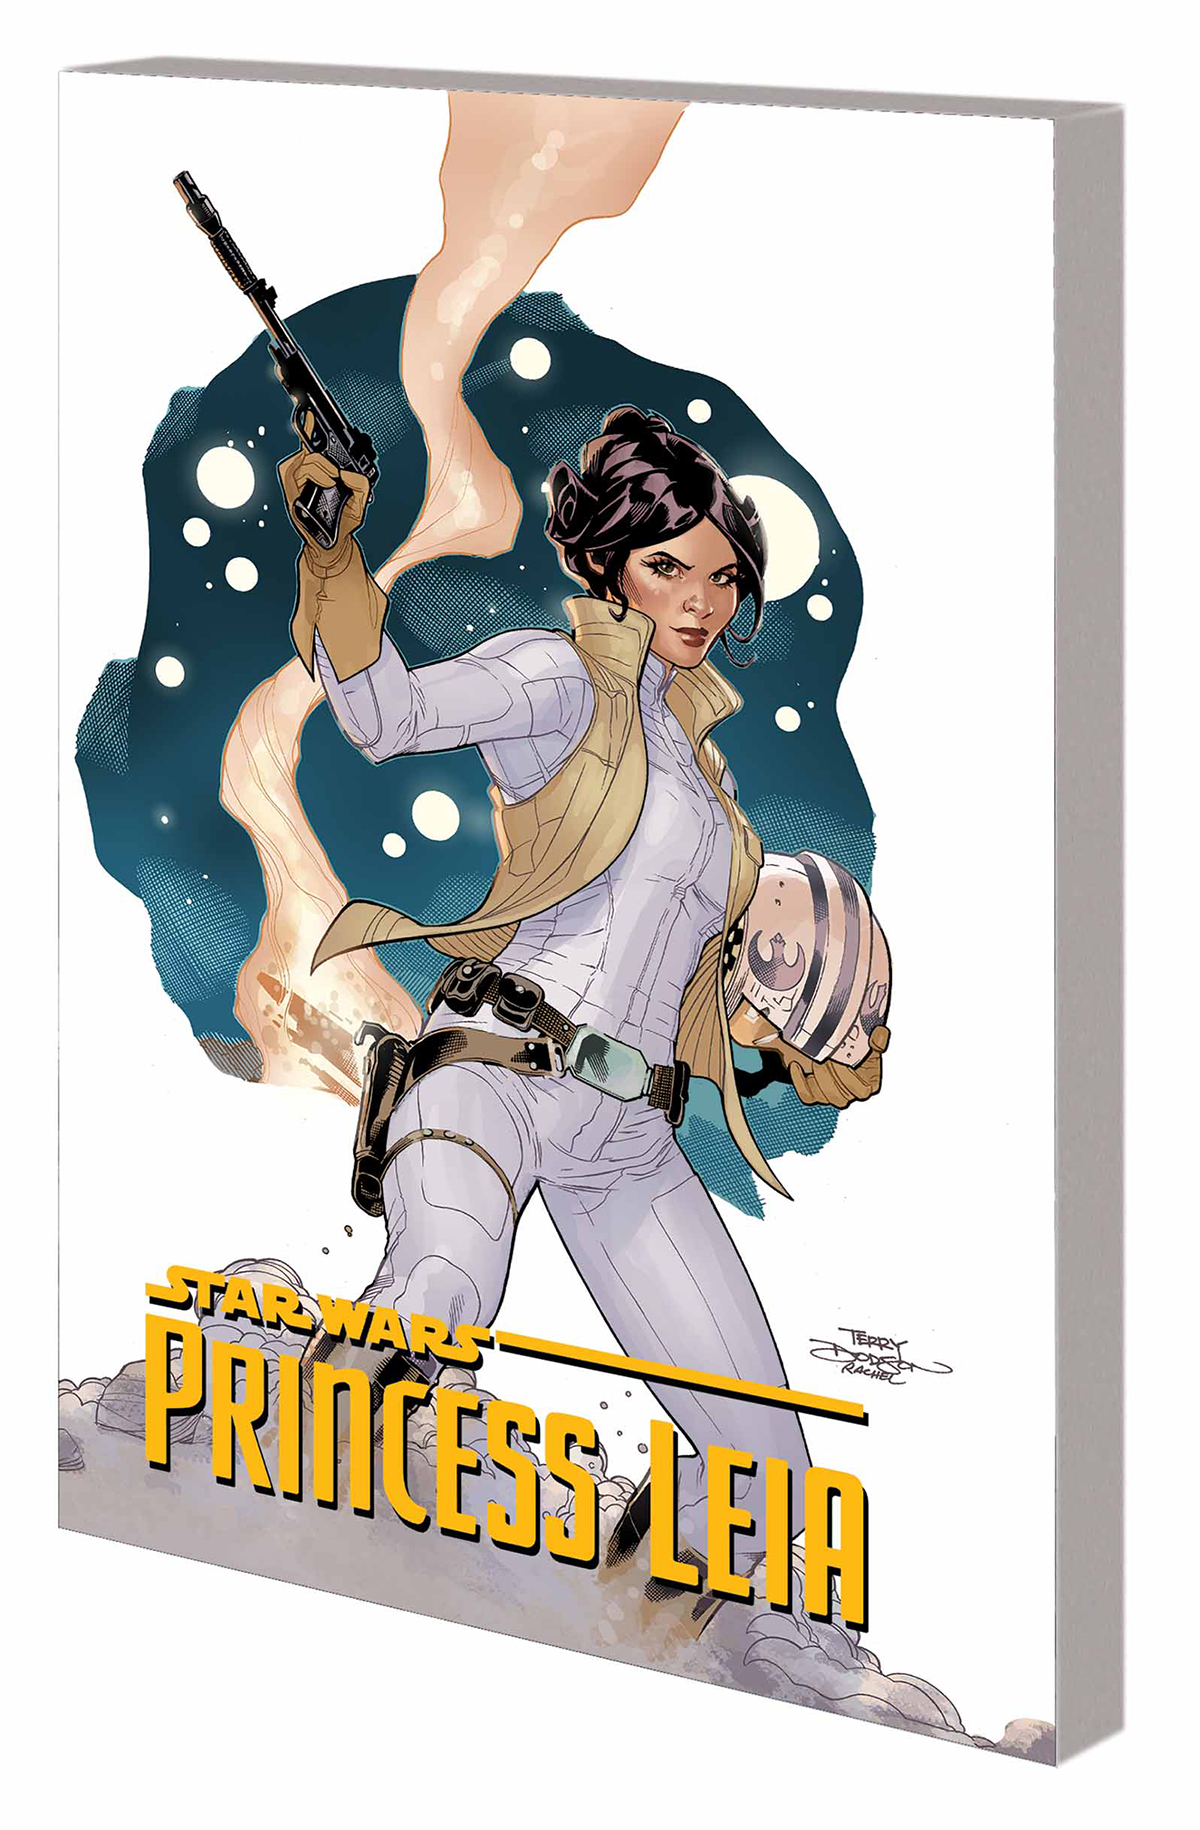 STAR WARS PRINCESS LEIA TP